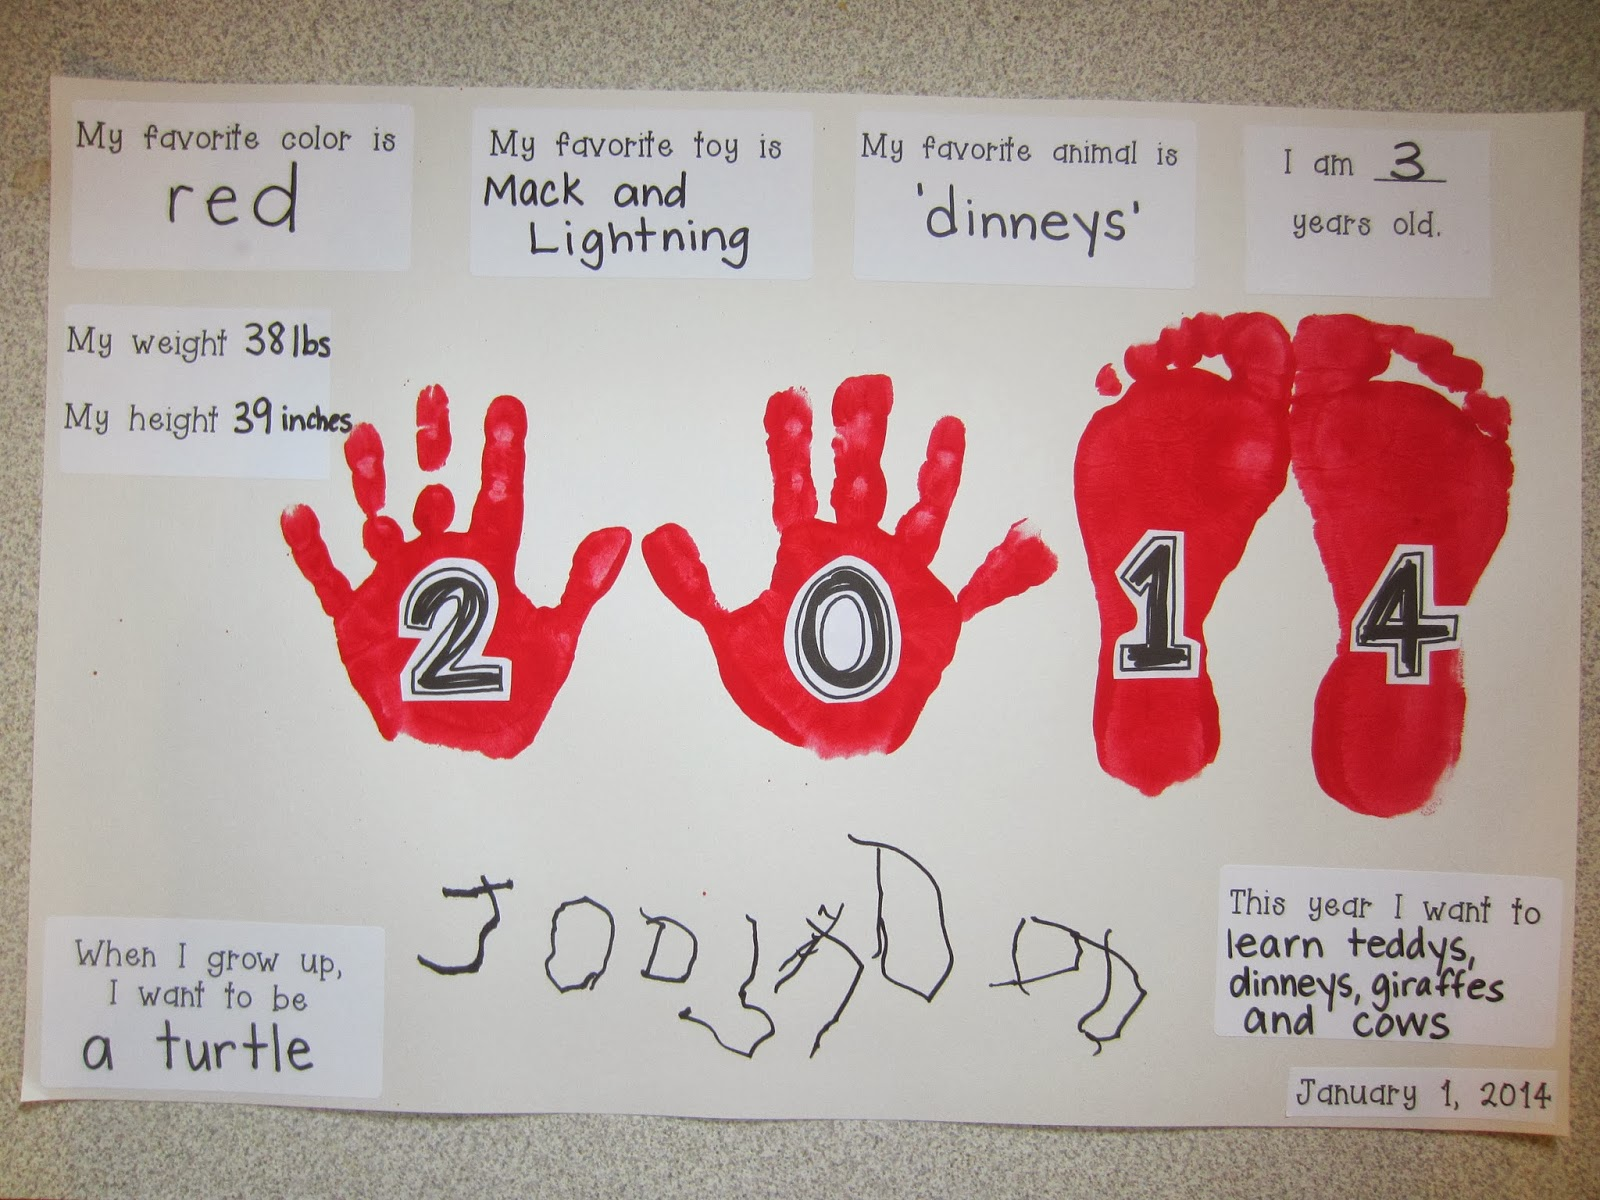 An example of the 2014 version of this New Year's kids craft